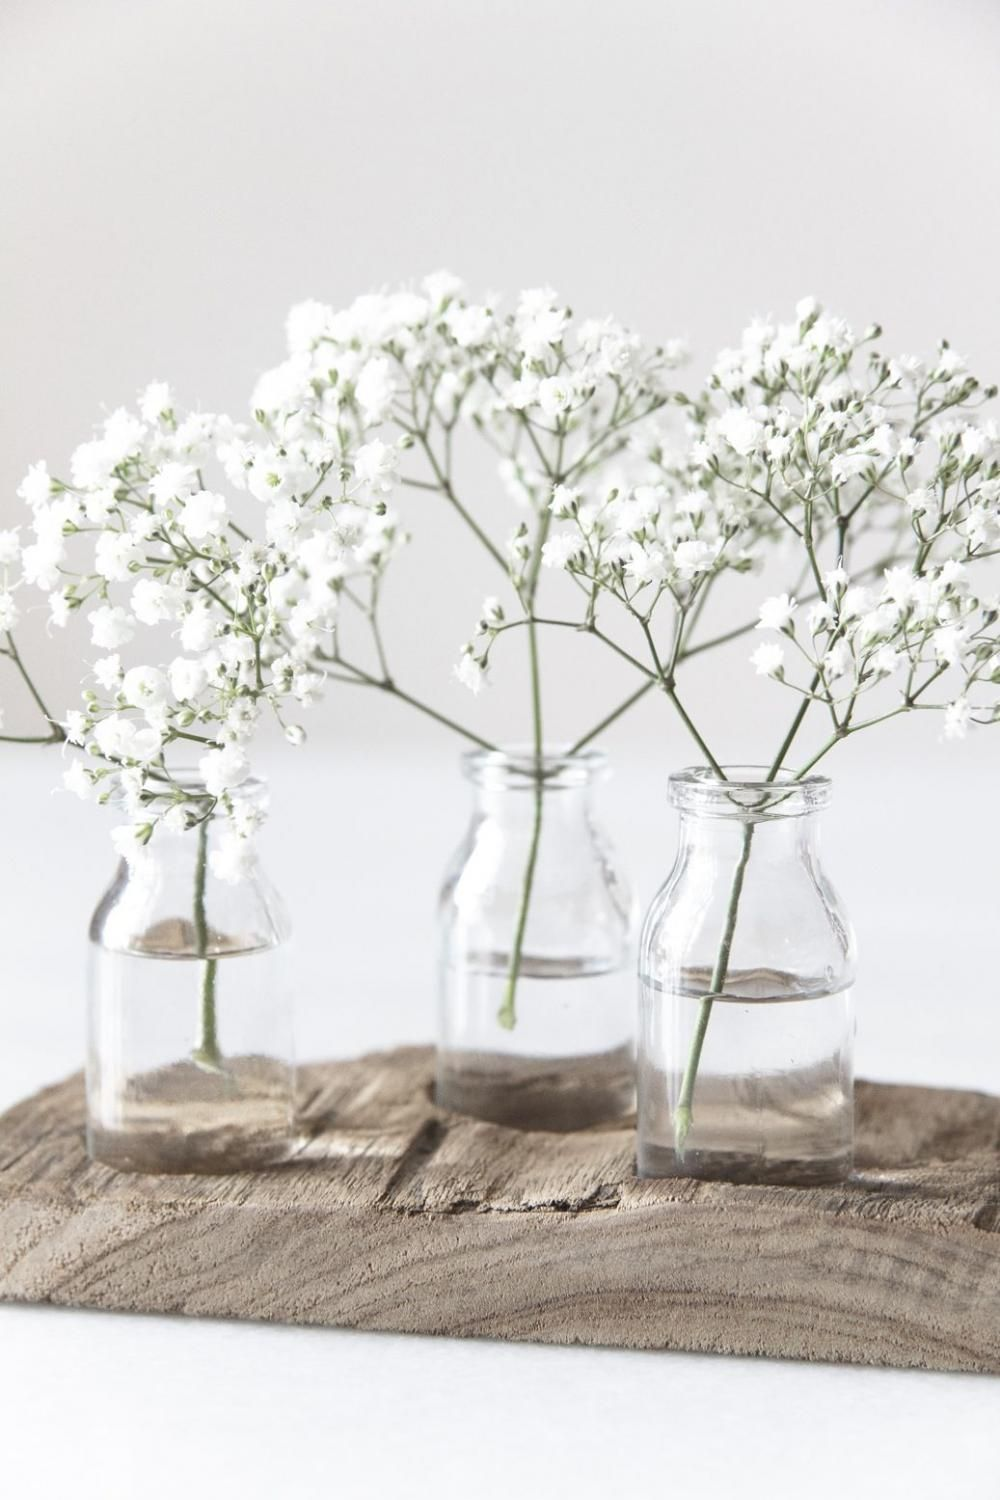 Pin On Decoratie Styling